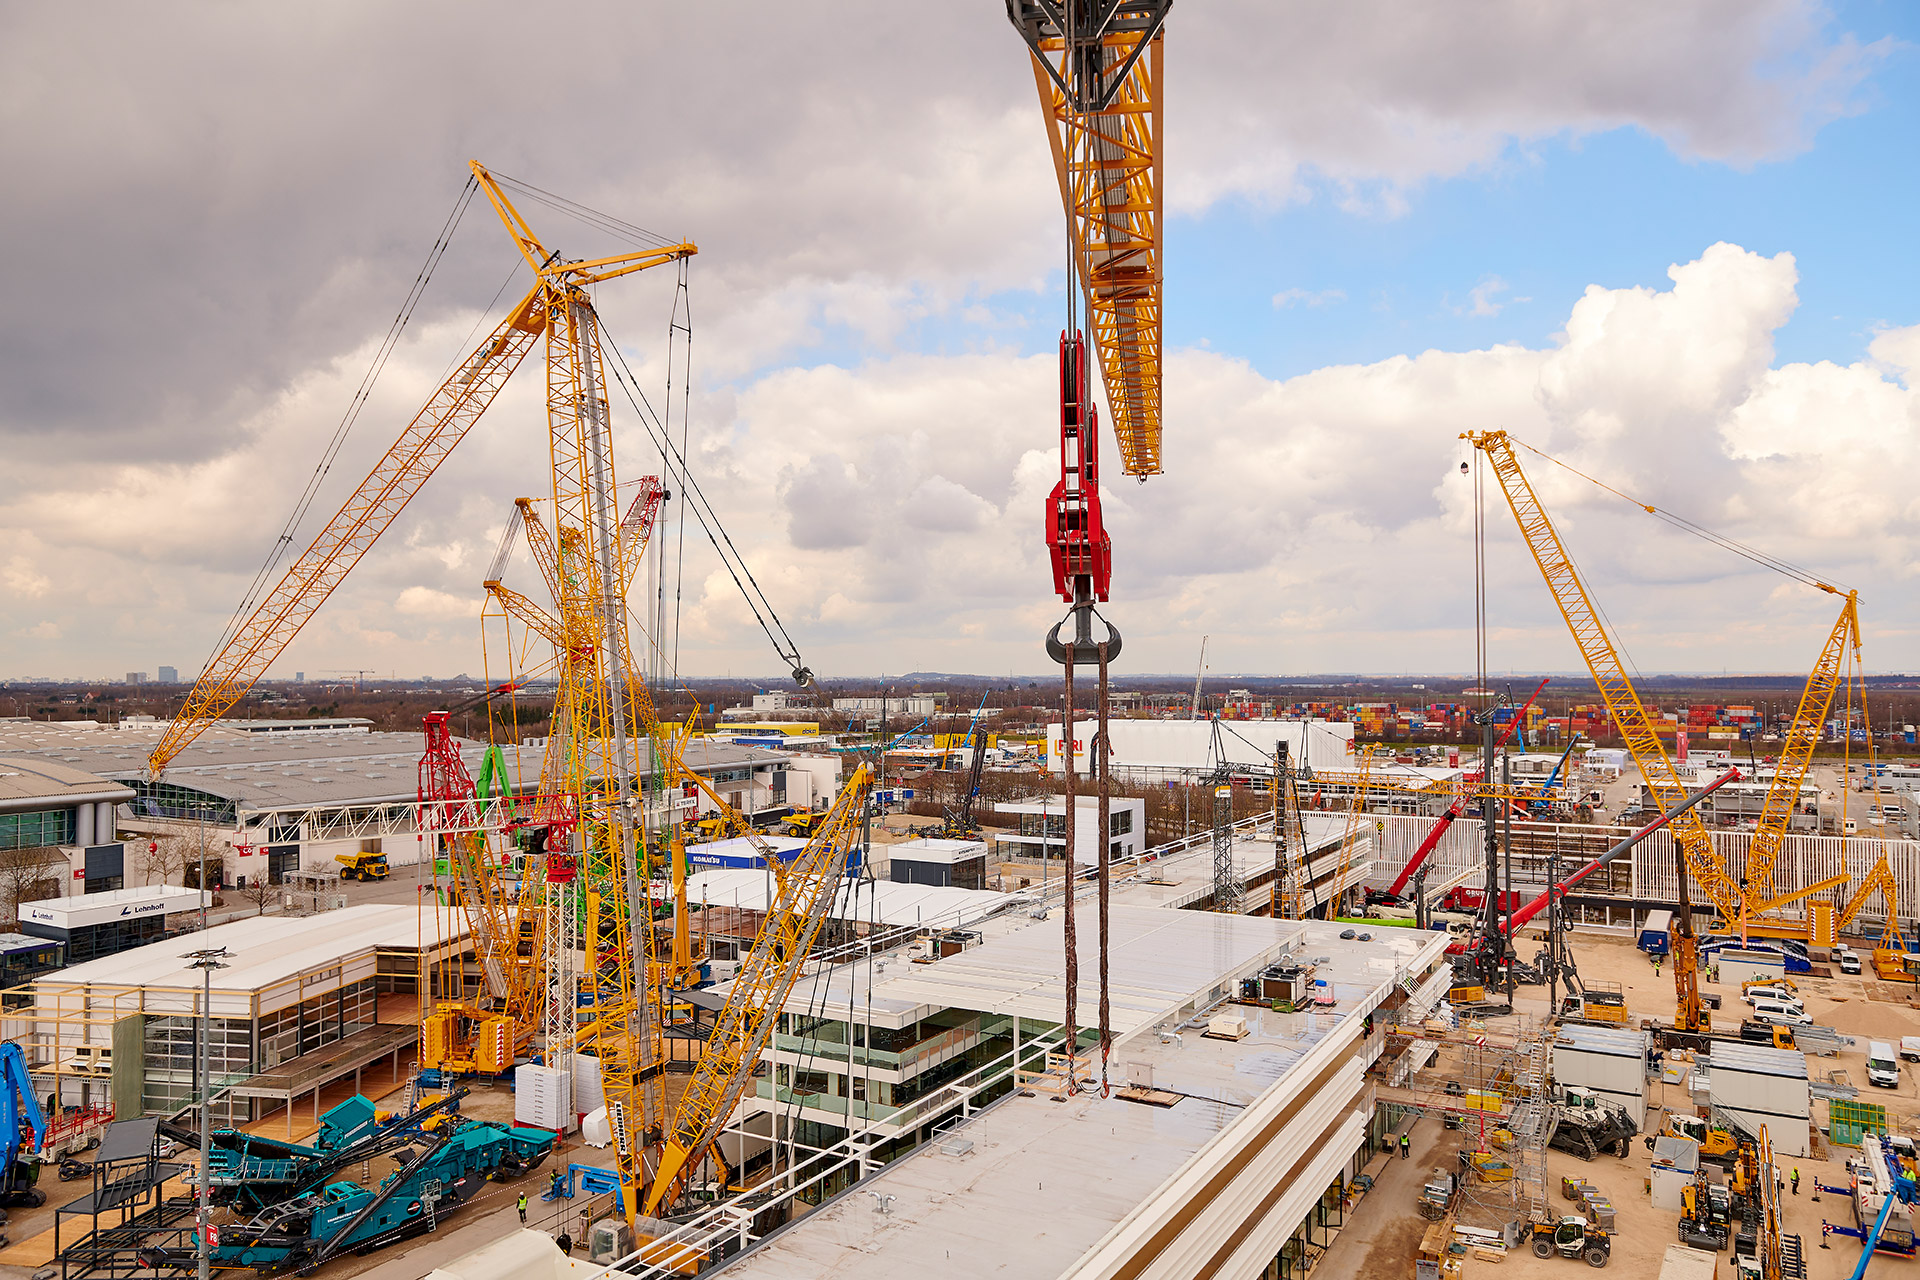 Set-up bauma 2019  An XXL trade fair: bauma 2019 will be spread over an area of 614,000 square meters. That's the size of 100 soccer fields. Since the last edition of bauma, the world's largest trade fair has added nearly 9,000 square meters.  Image Source  Bauma.de